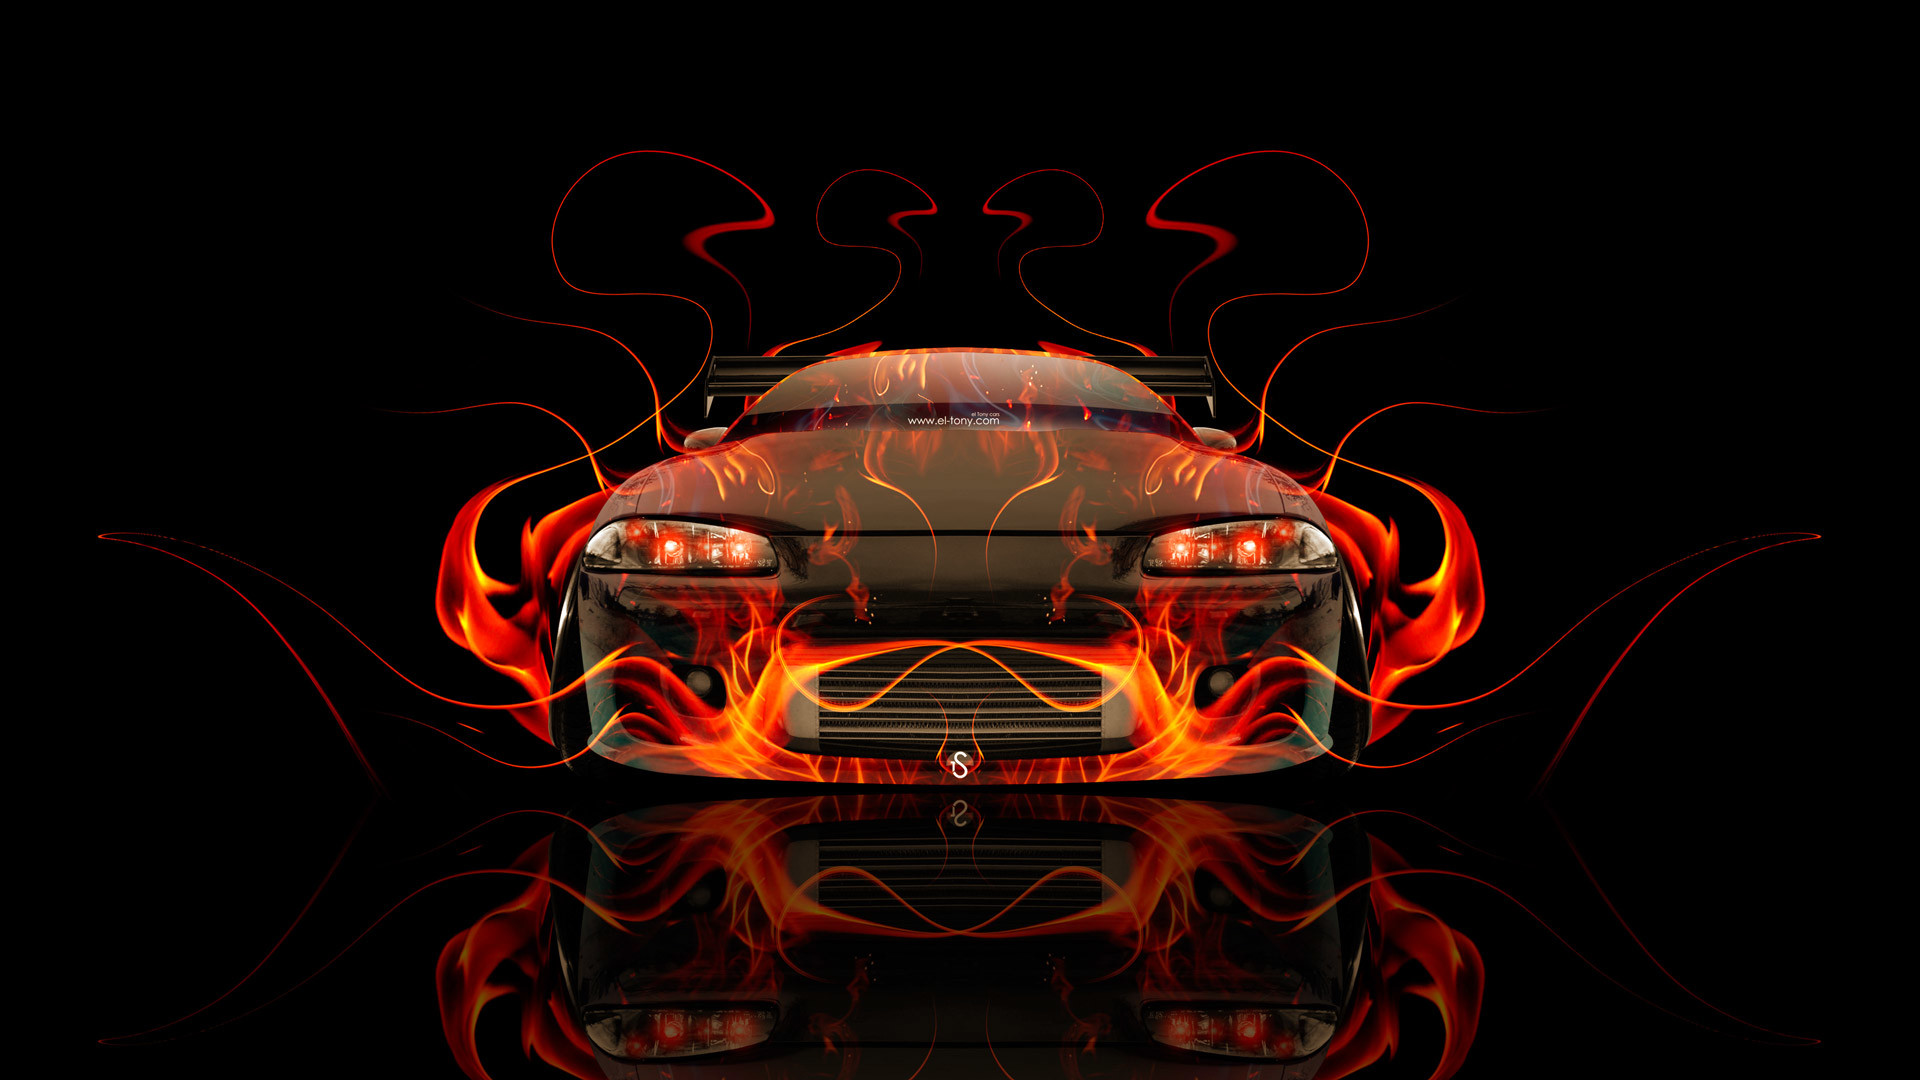 Fast And Furious Cars Hd Wallpapers Hd Mitsubishi Eclipse Wallpaper 68 Images